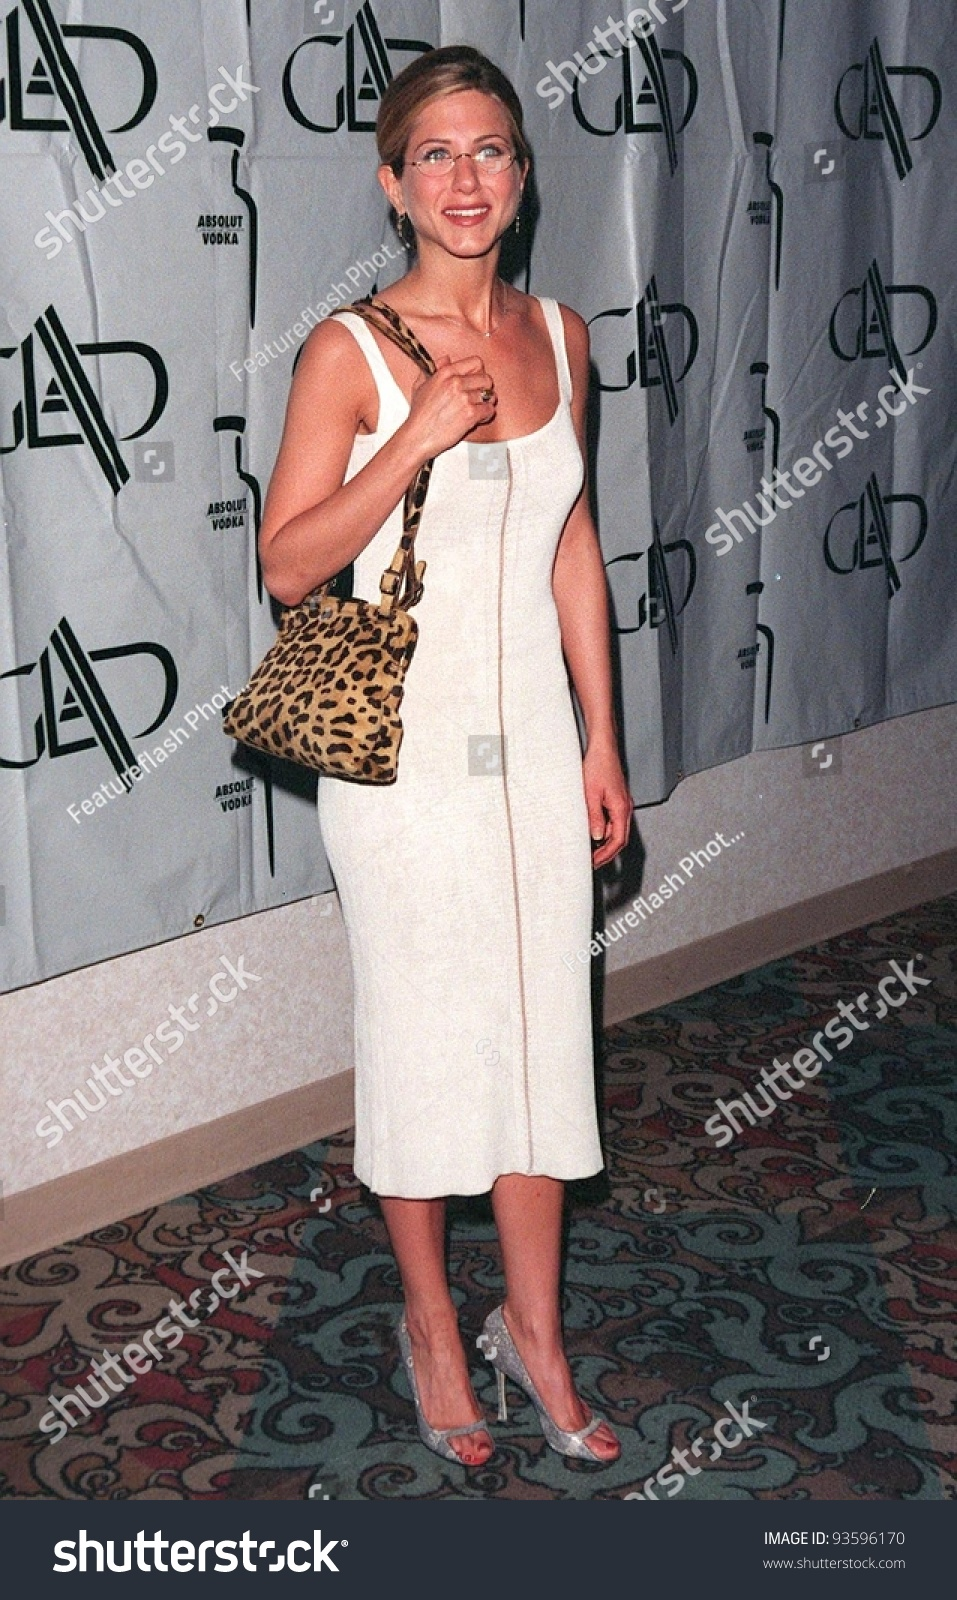 20APR98: Friends star JENNIFER ANISTON at the 9th Annual GLAAD (Gay &  Lesbian Alliance